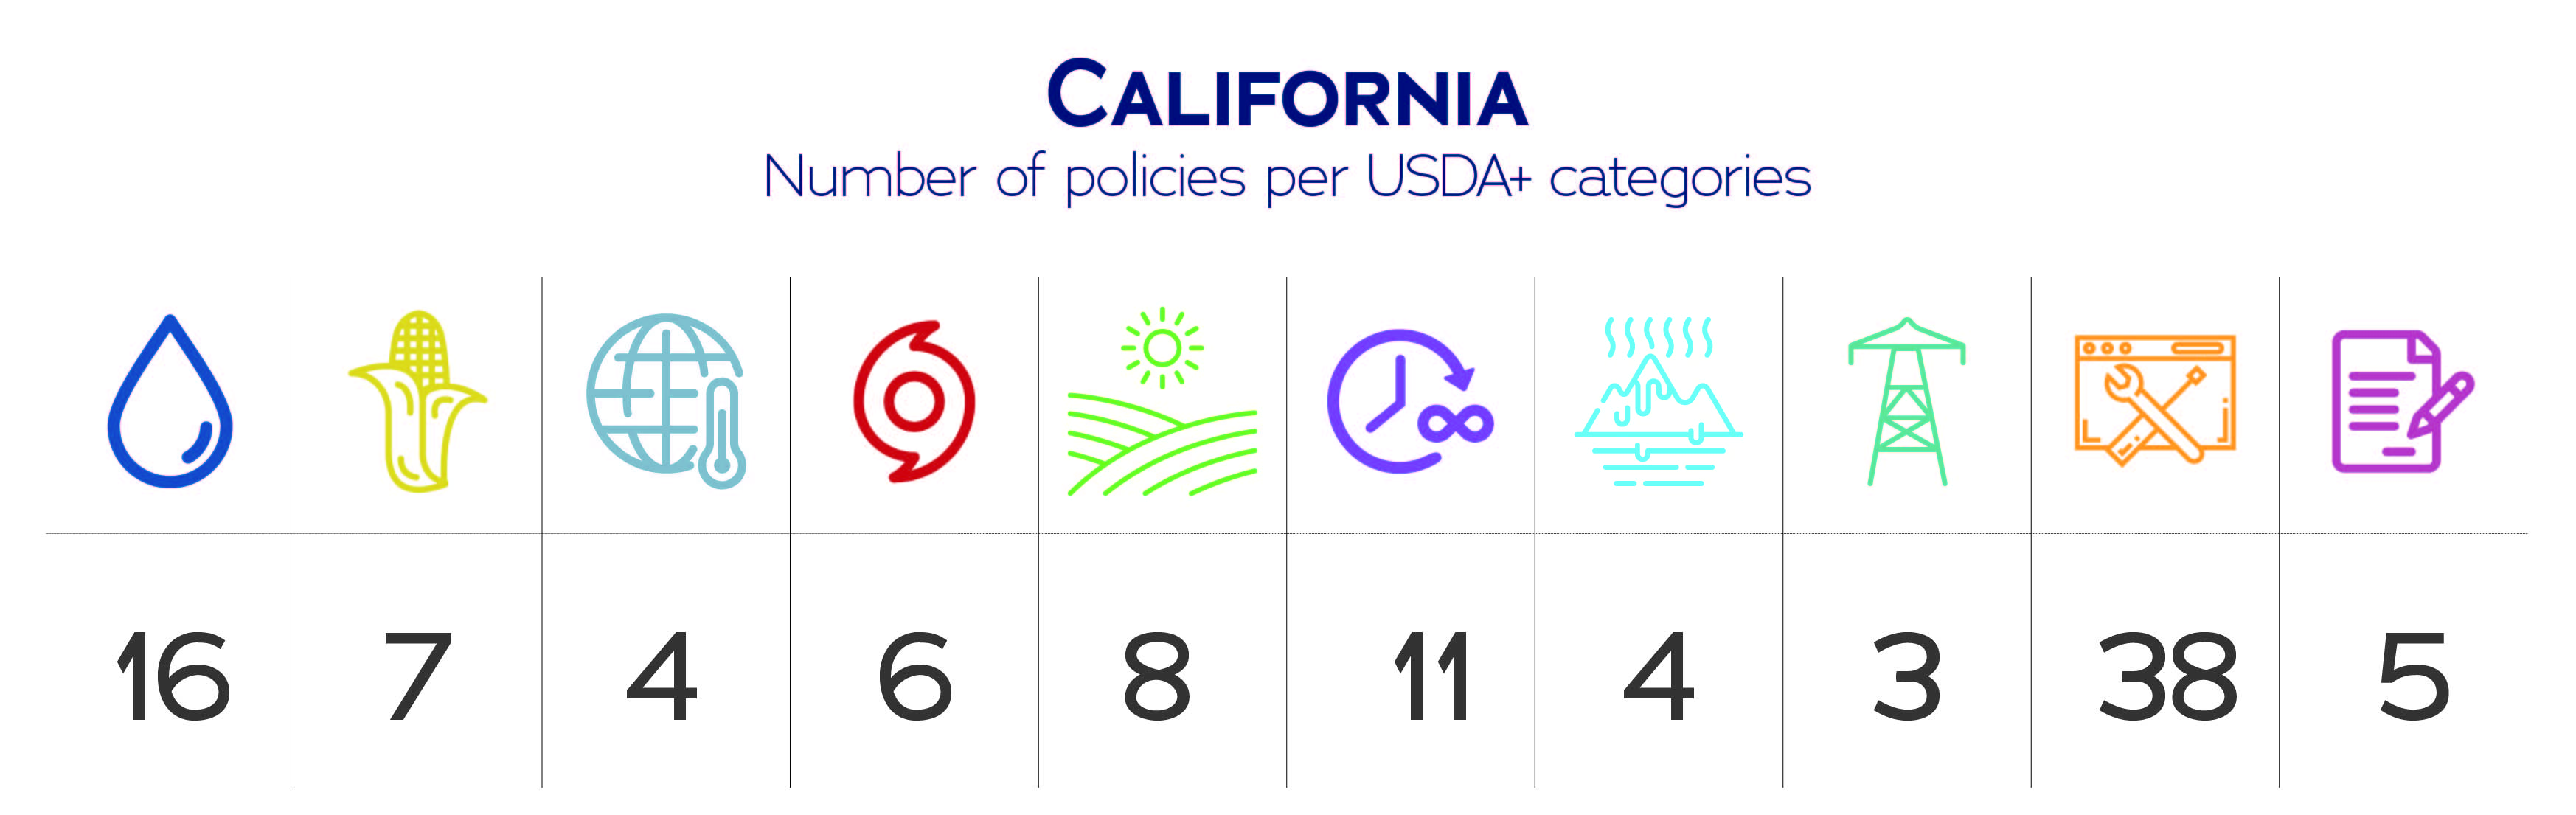 California USDA+ data